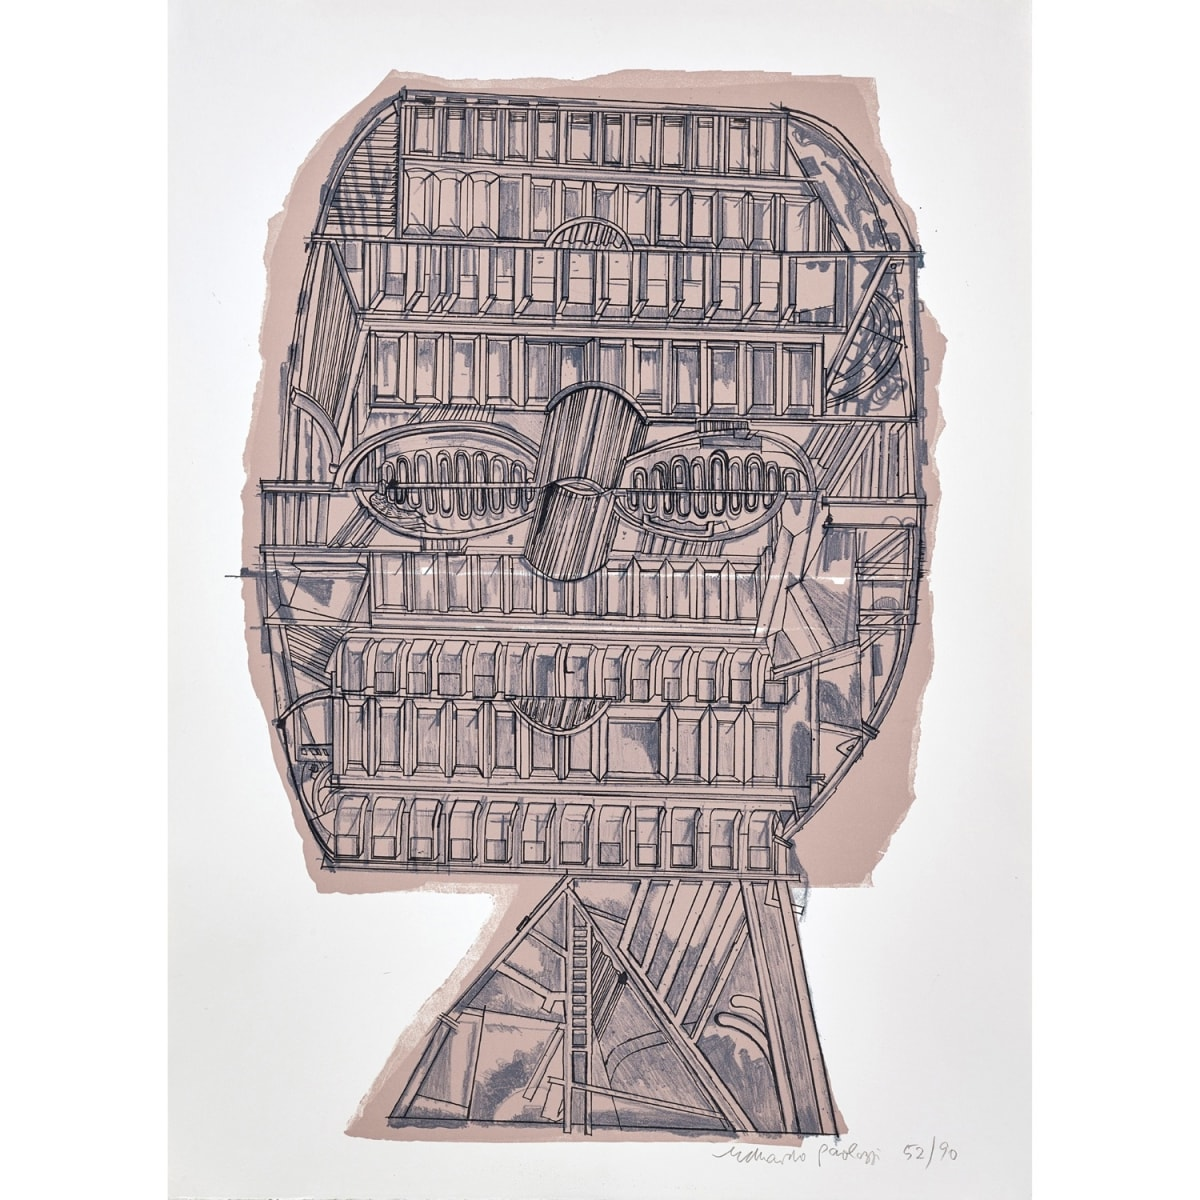 Sir Eduardo Paolozzi Untitled (from Homage to Picasso), 1974 signed and numbered 52/90 in pencil to margin lithograph 30 1/4 x 22 inches